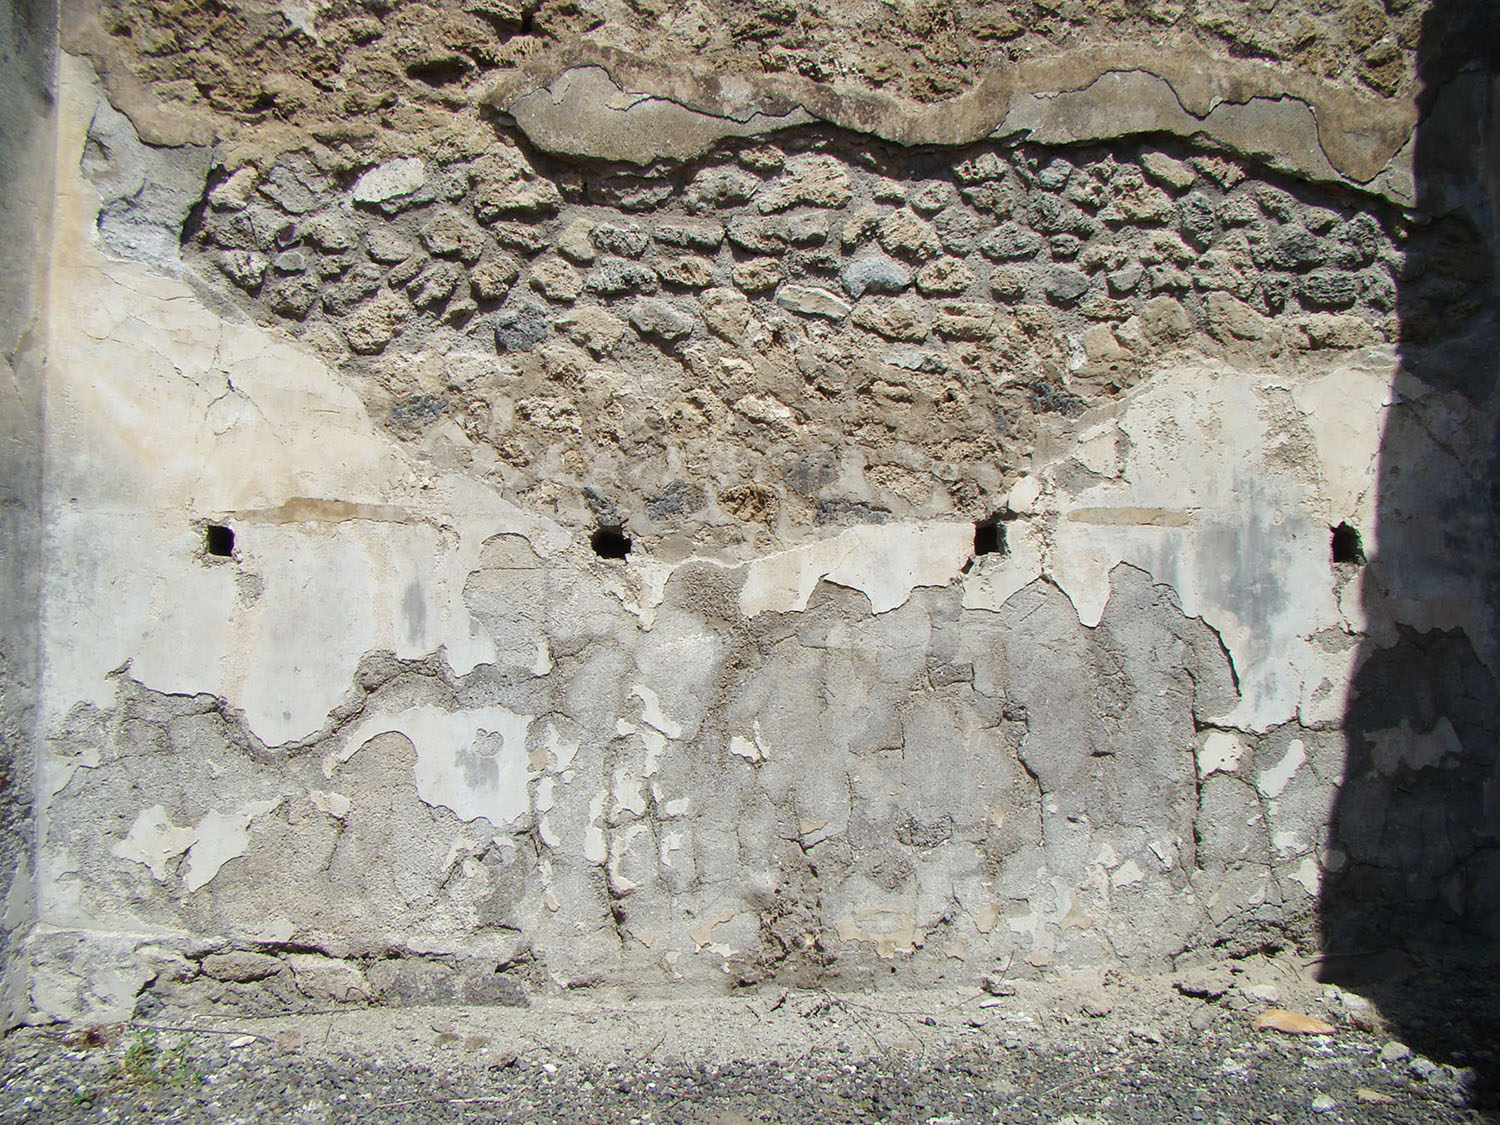 Fig. 8. House VI.13.13, Pompeii, right ala, detail of back wall with holes for shelves (the top row has been concealed by modern restoration).